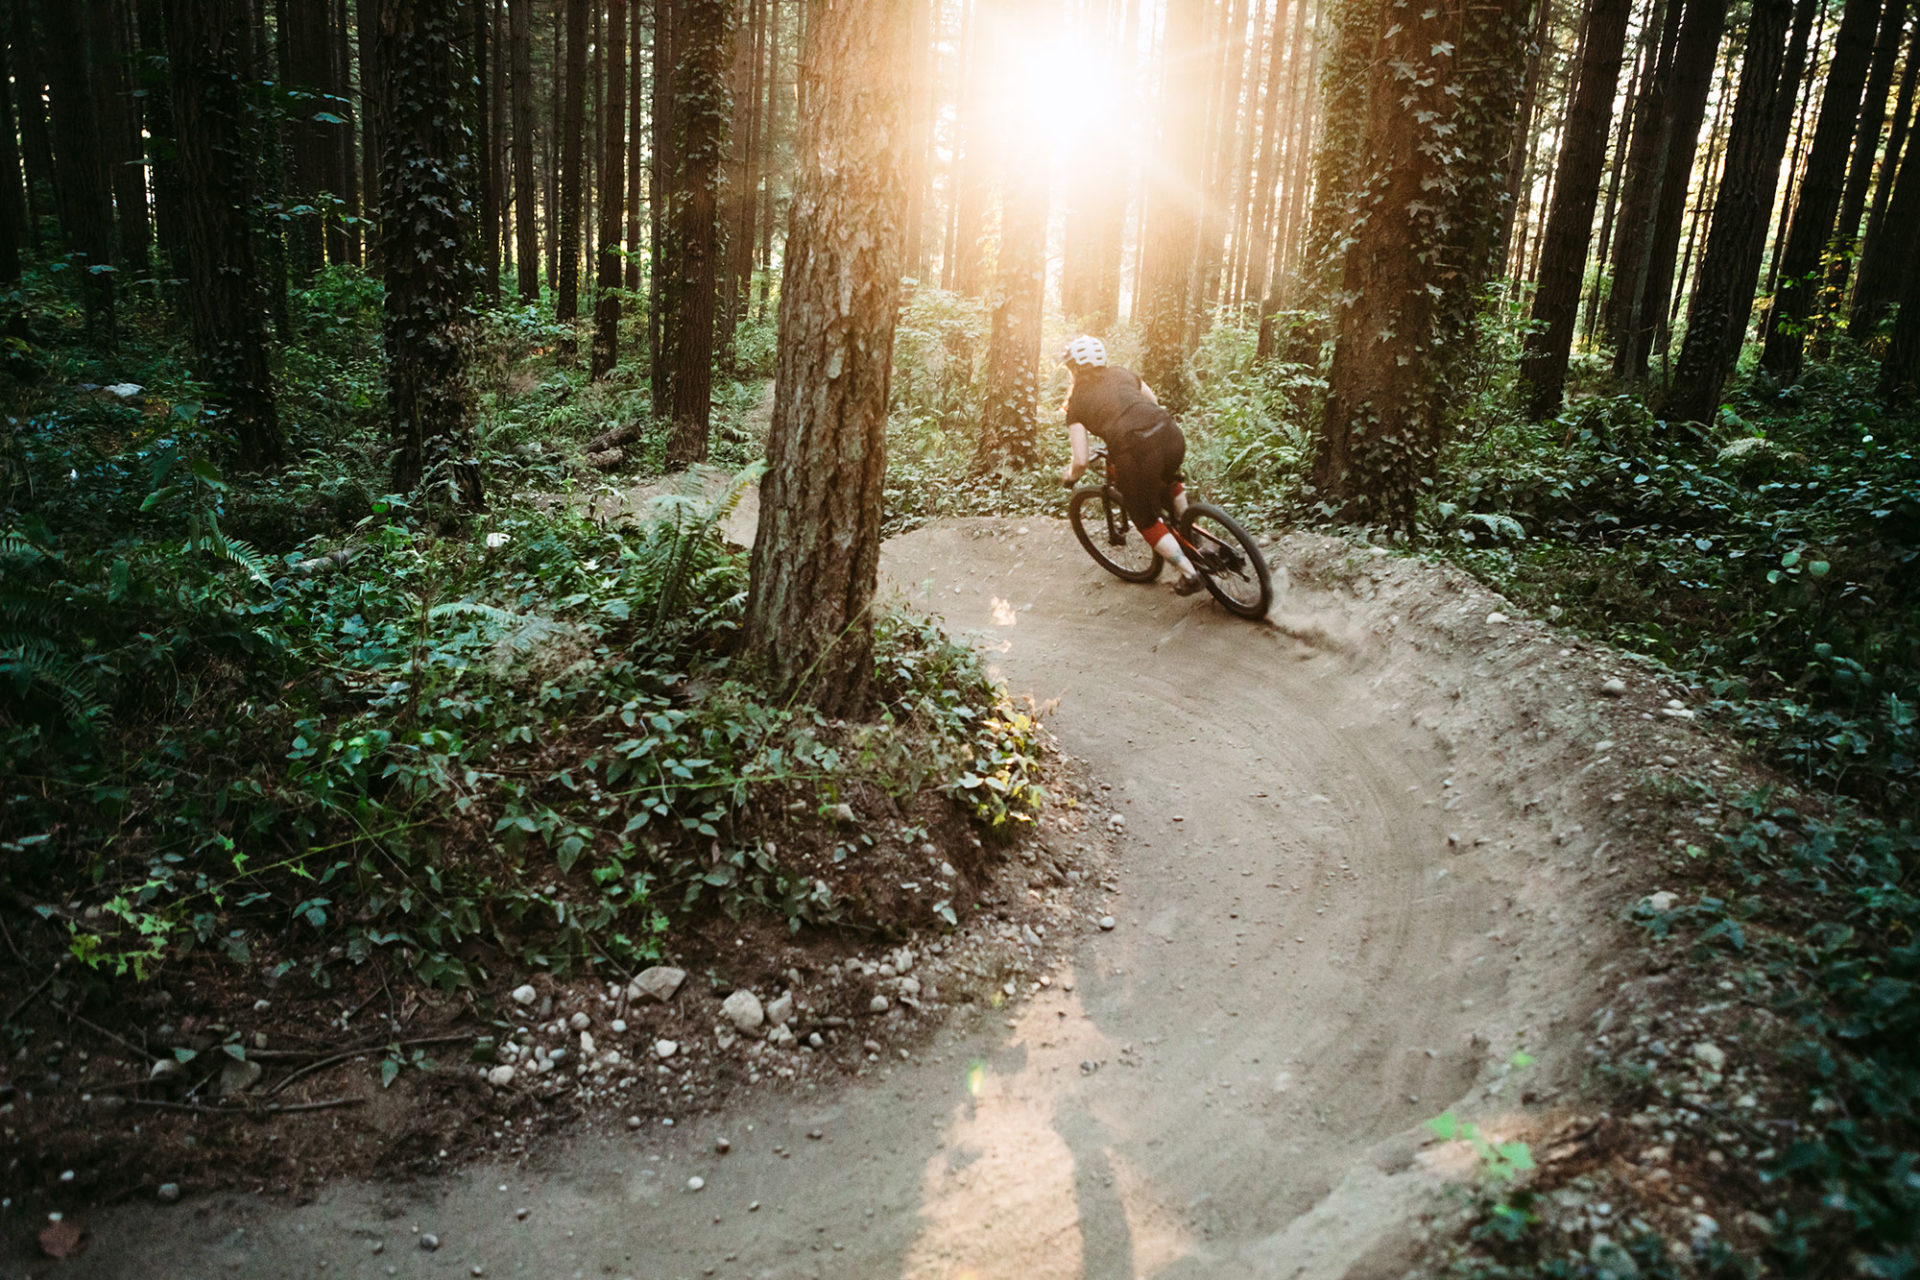 A biker riding on trail in the forest